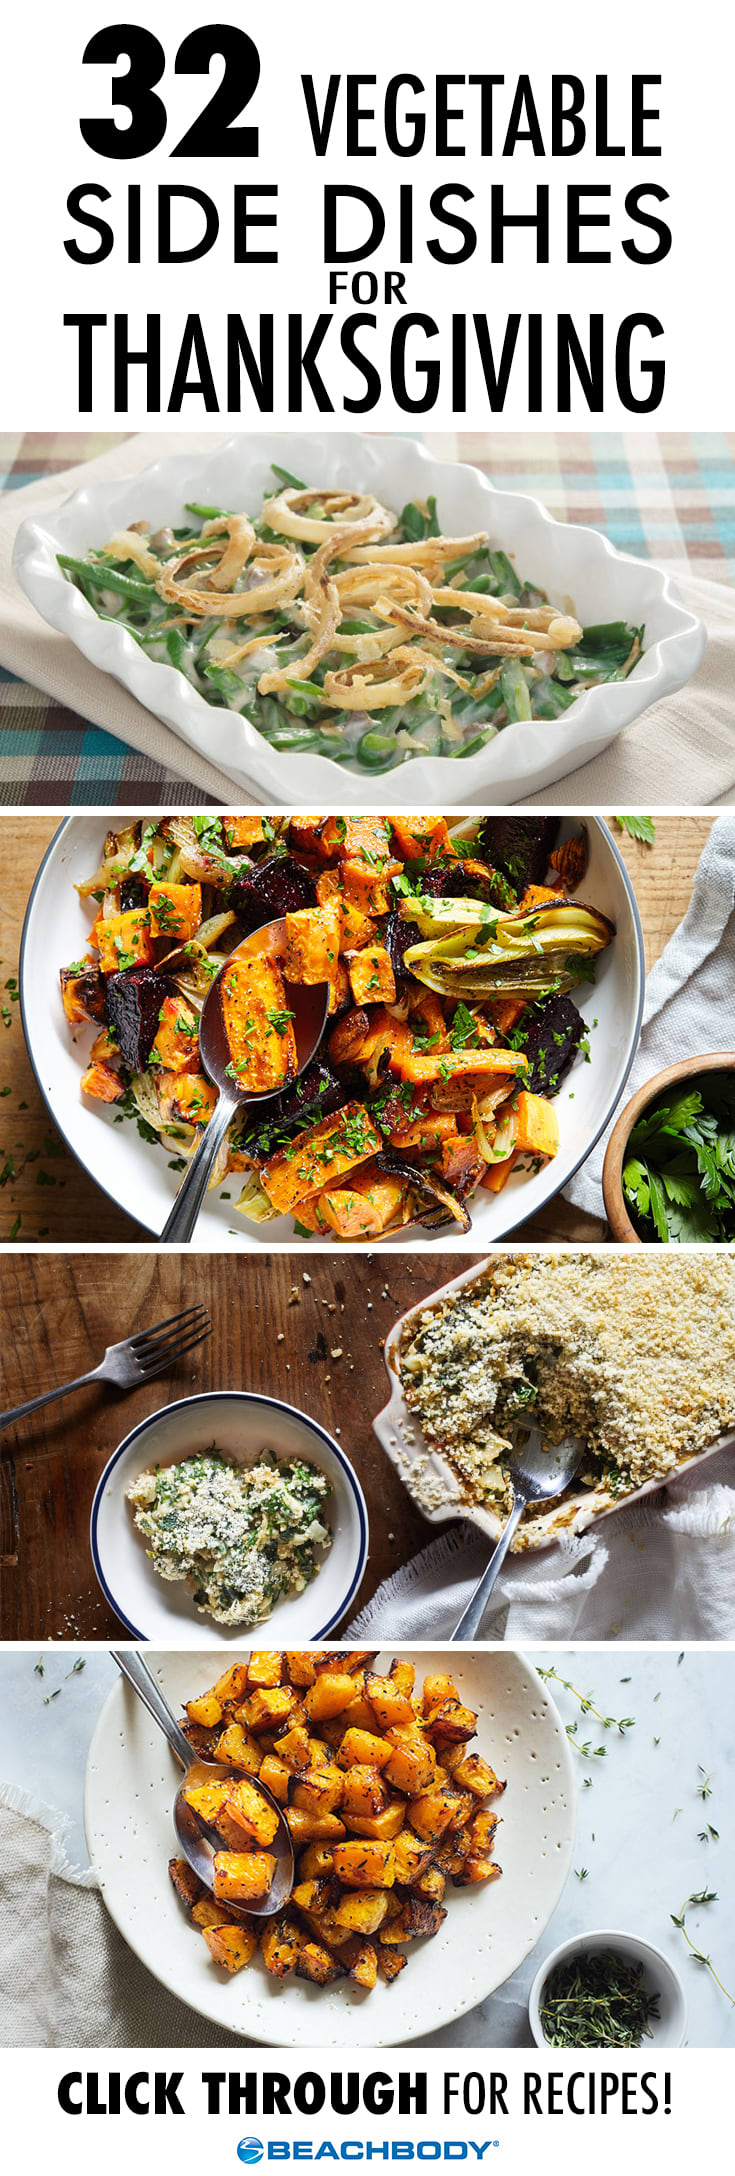 32 Thanksgiving Vegetable Side Dishes